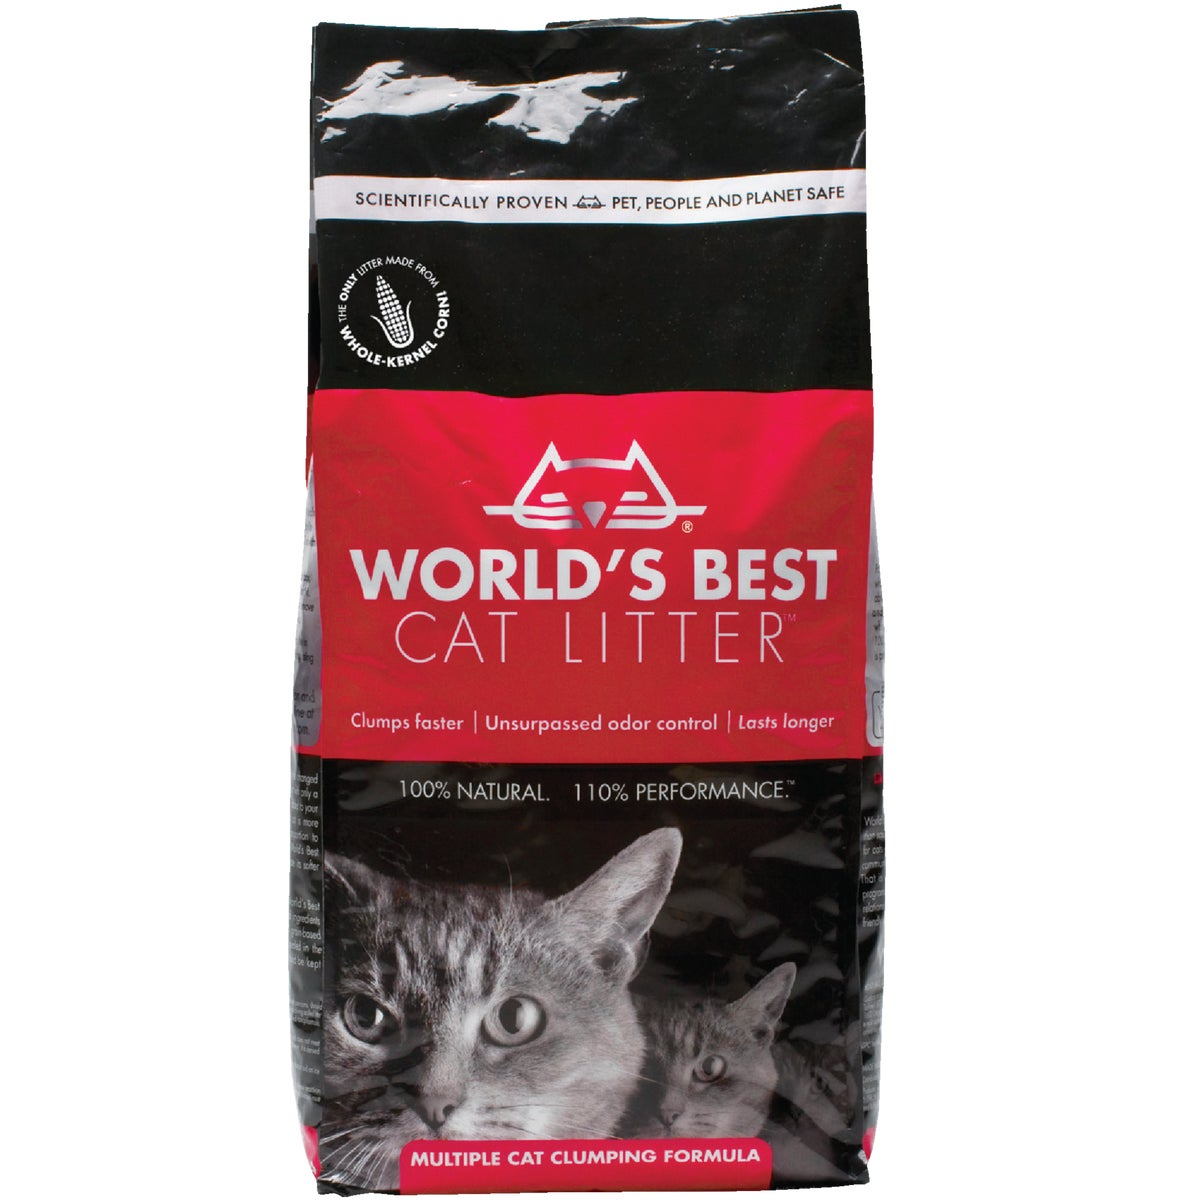 7LB WRLD BEST CAT LITTER